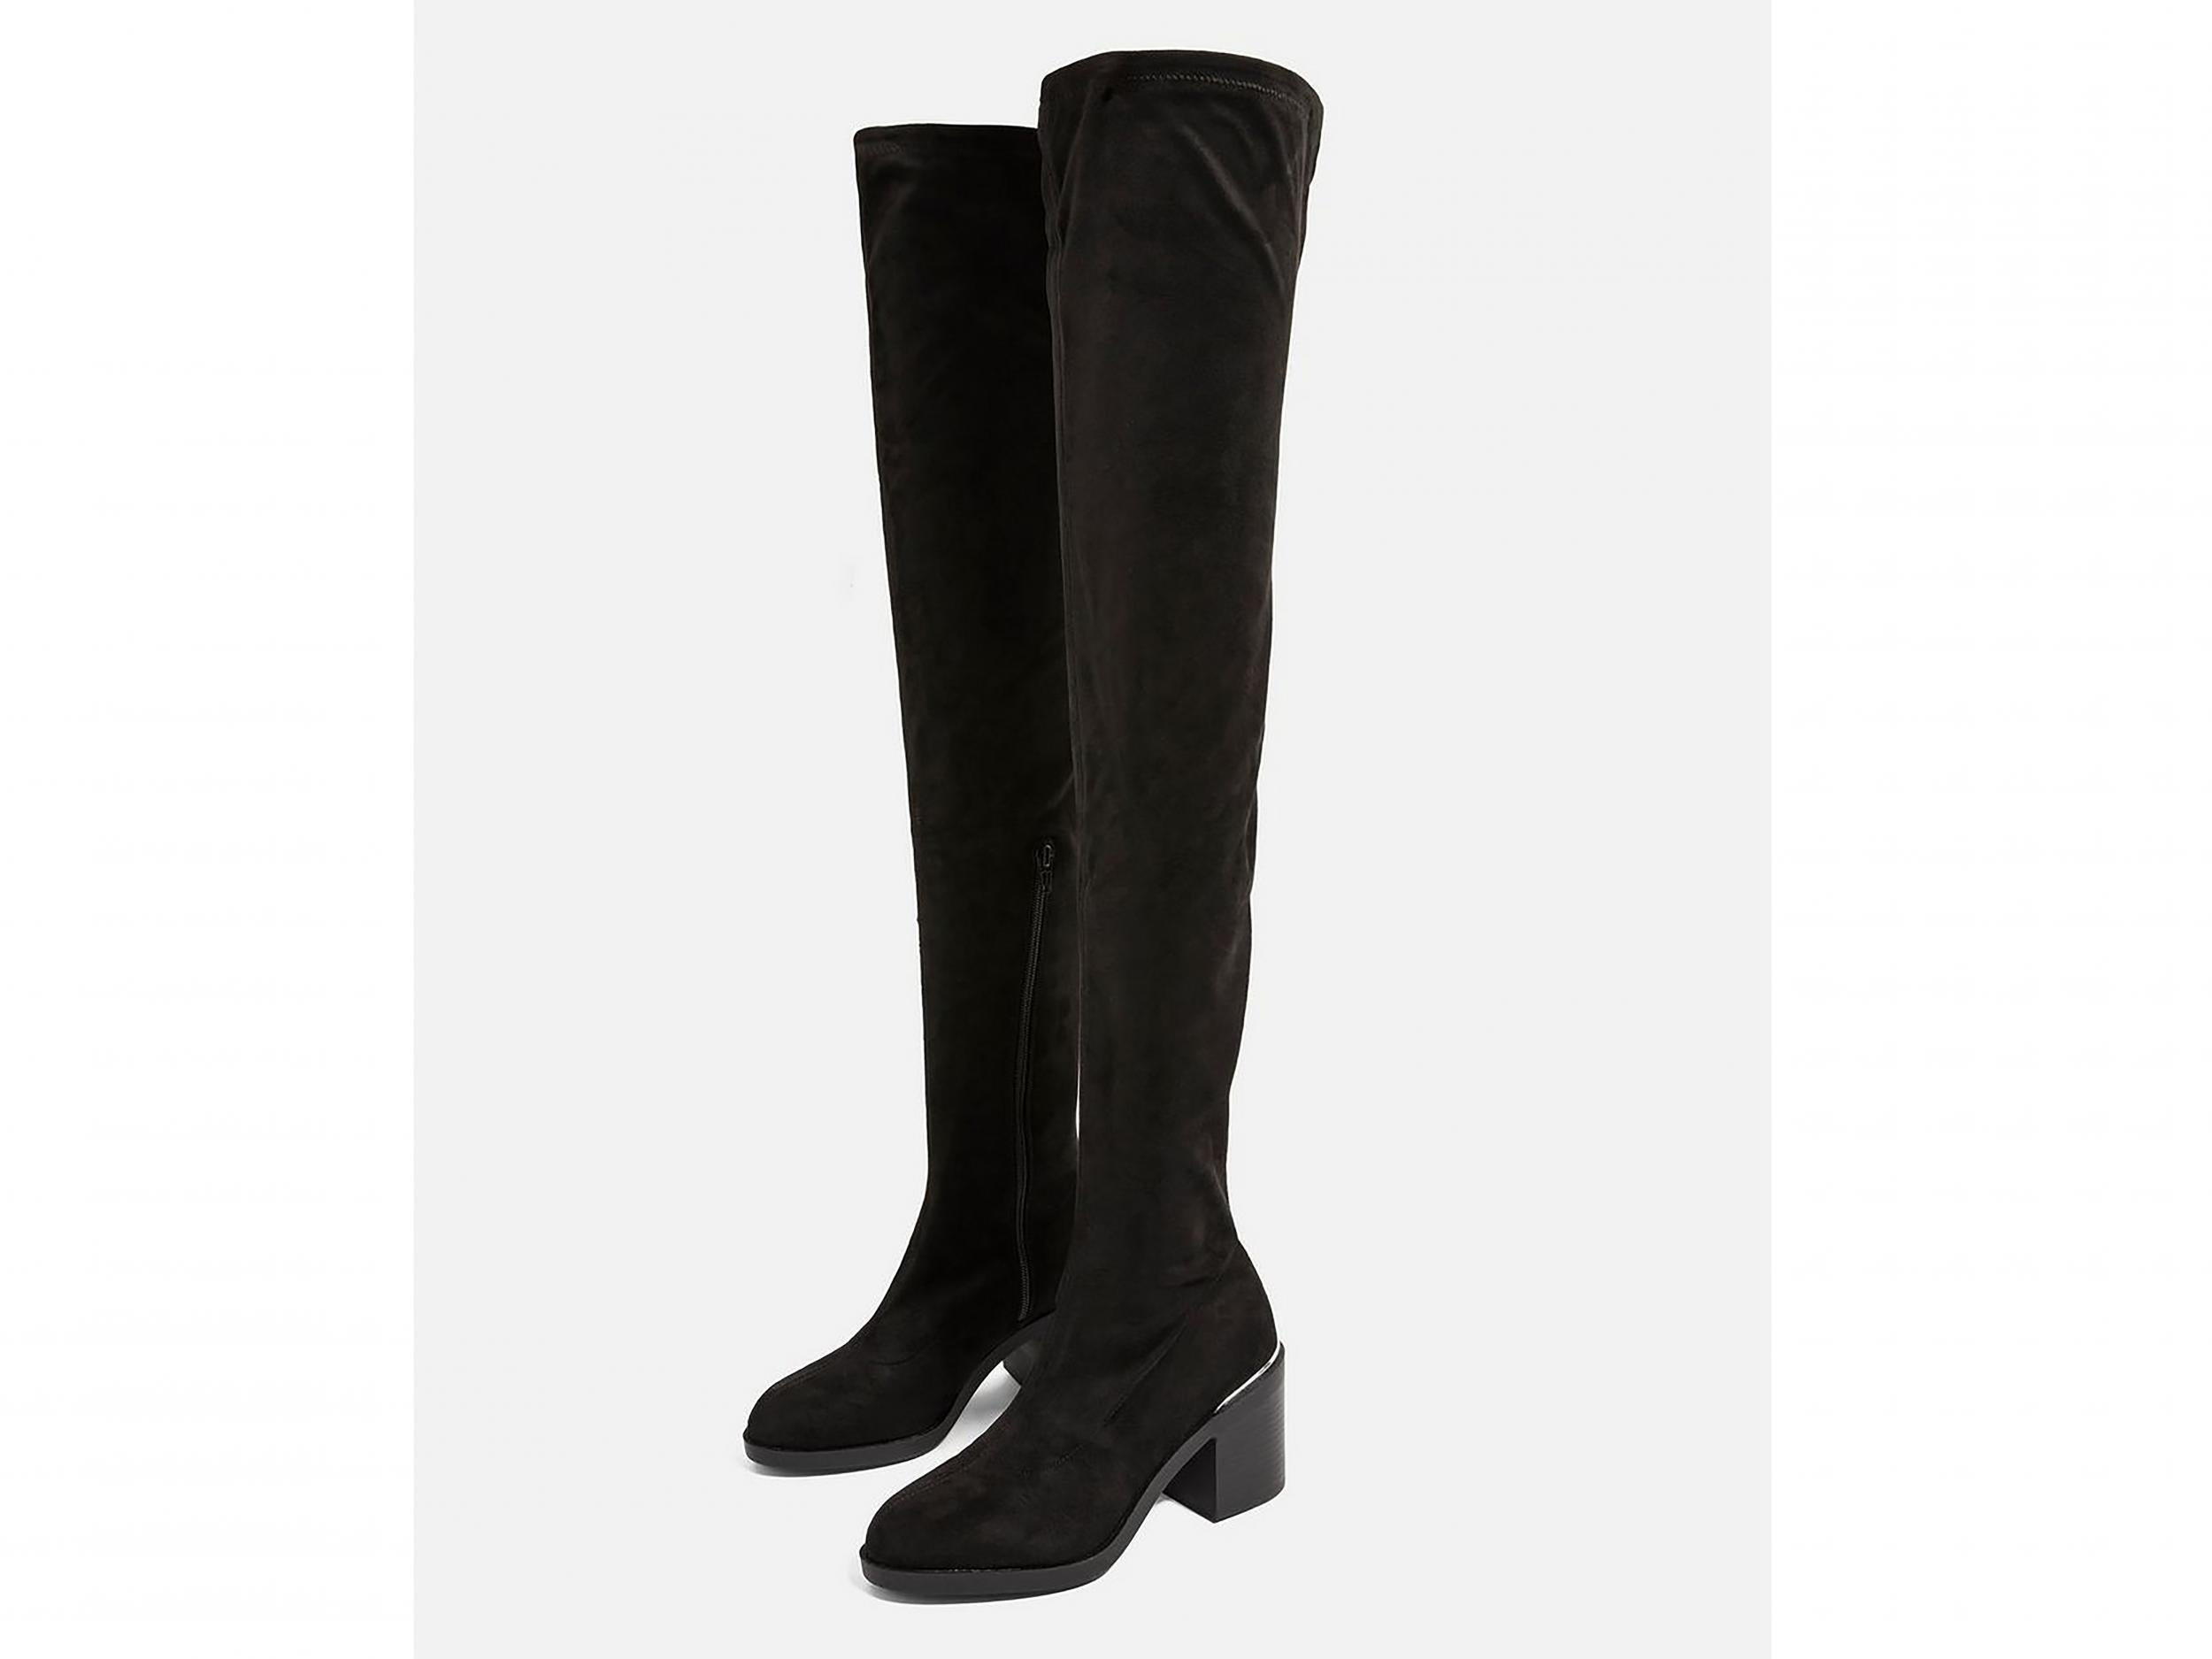 big sale to buy on wholesale 7 best over-the-knee and thigh-high boots | The Independent